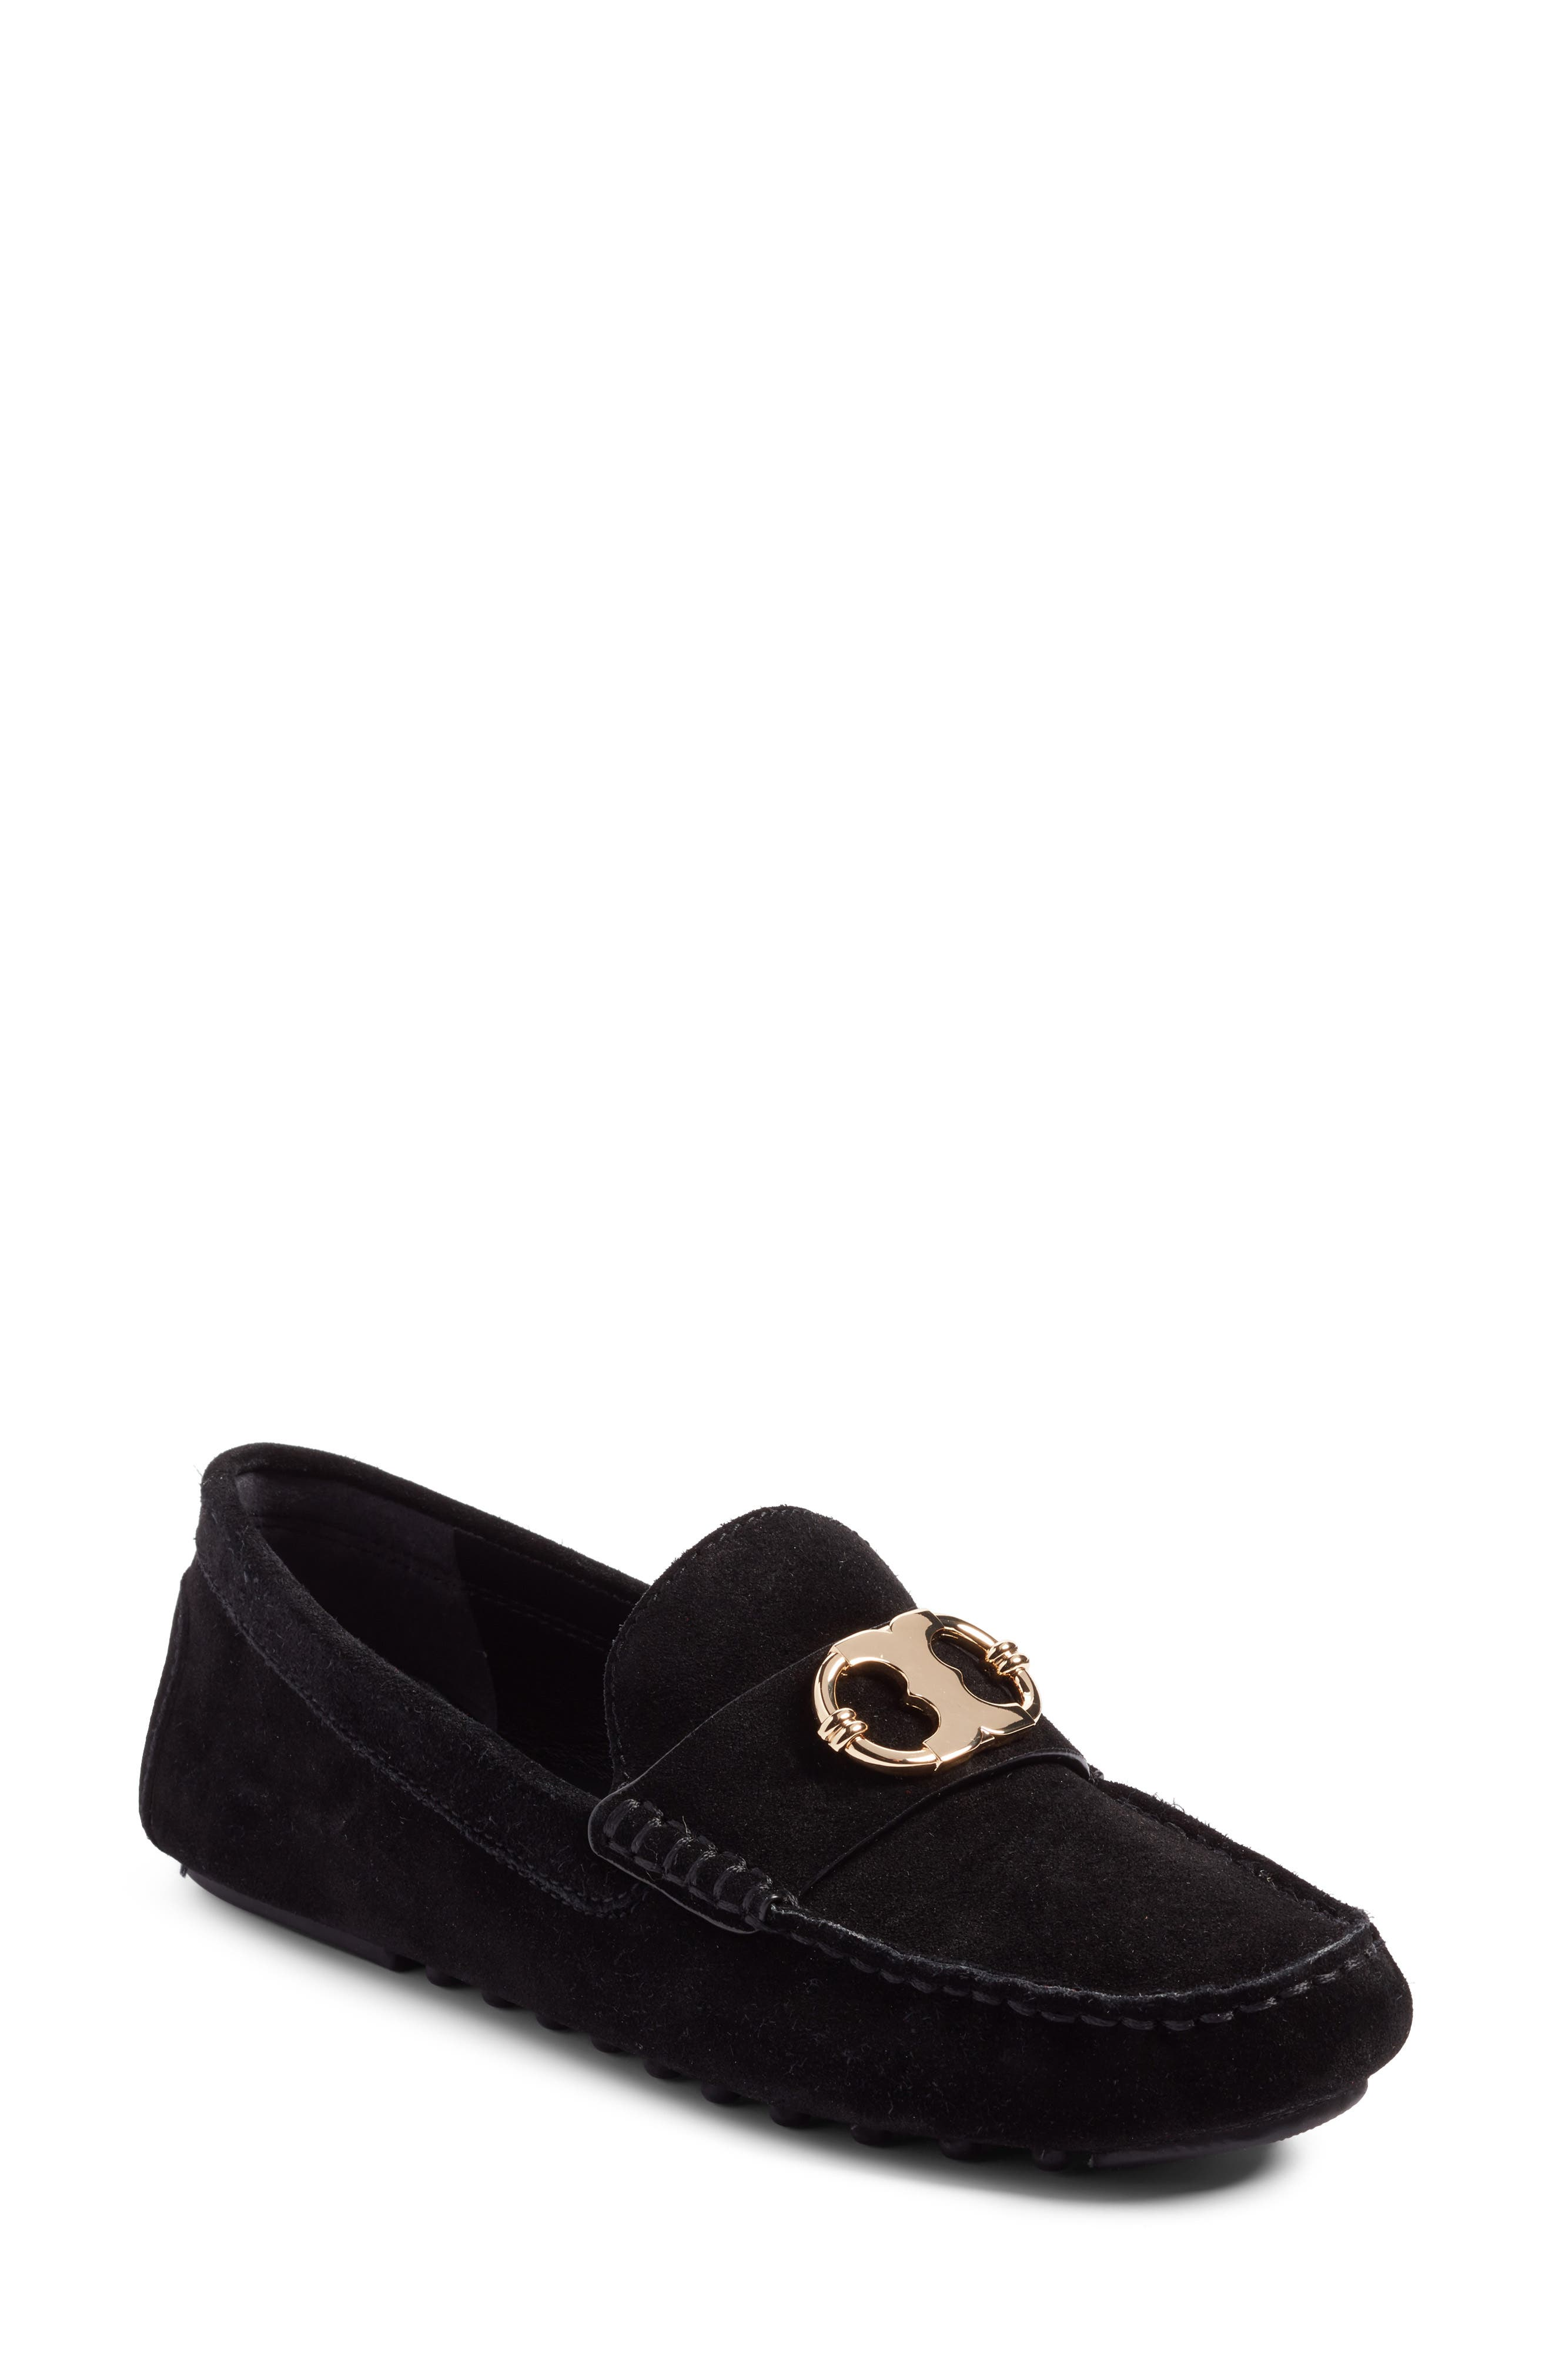 Gemini Driving Loafer,                         Main,                         color,